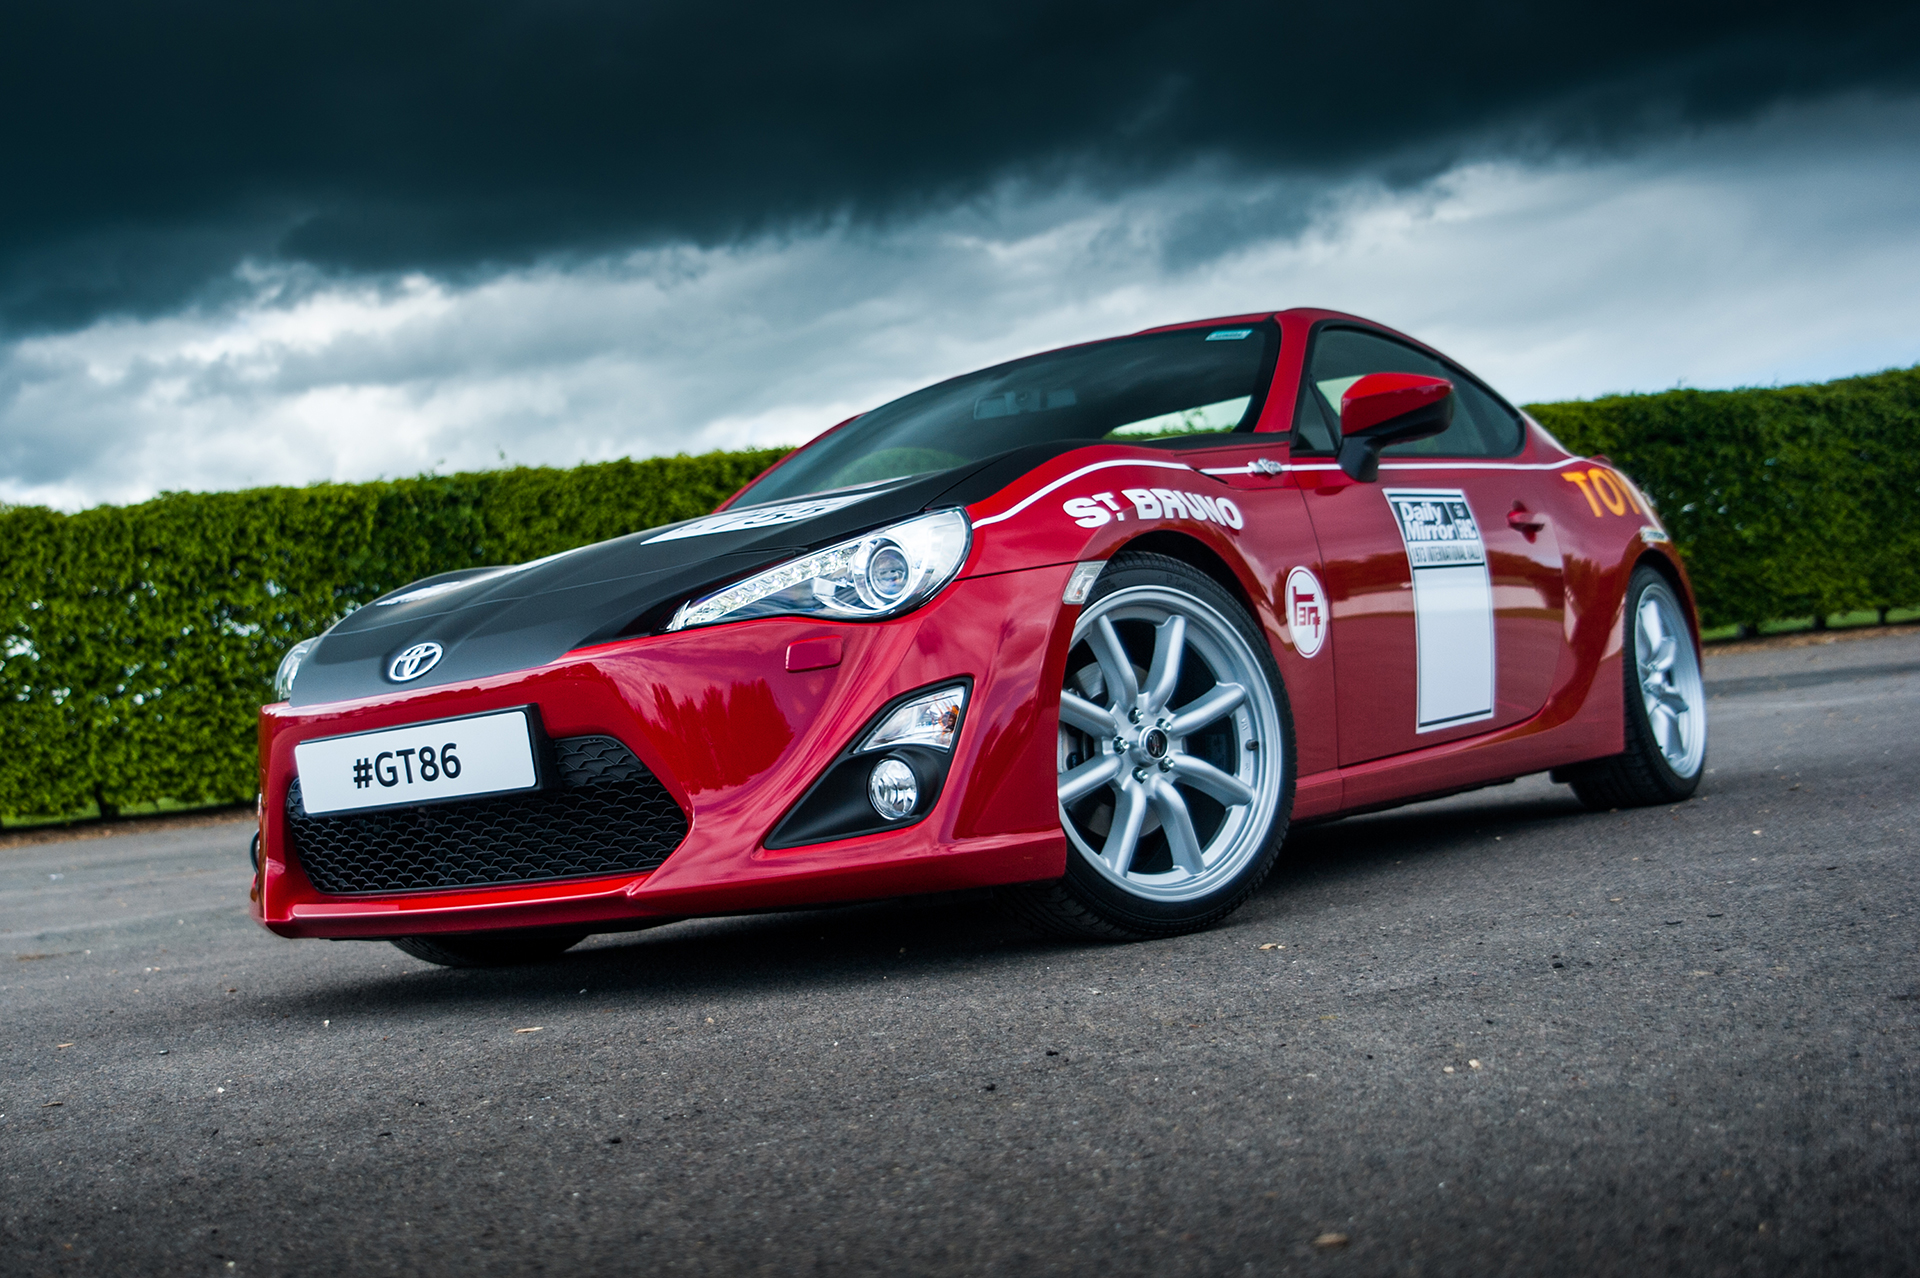 Toyota GT86 - classic-livery - Ove Andersson Celica 1600GT